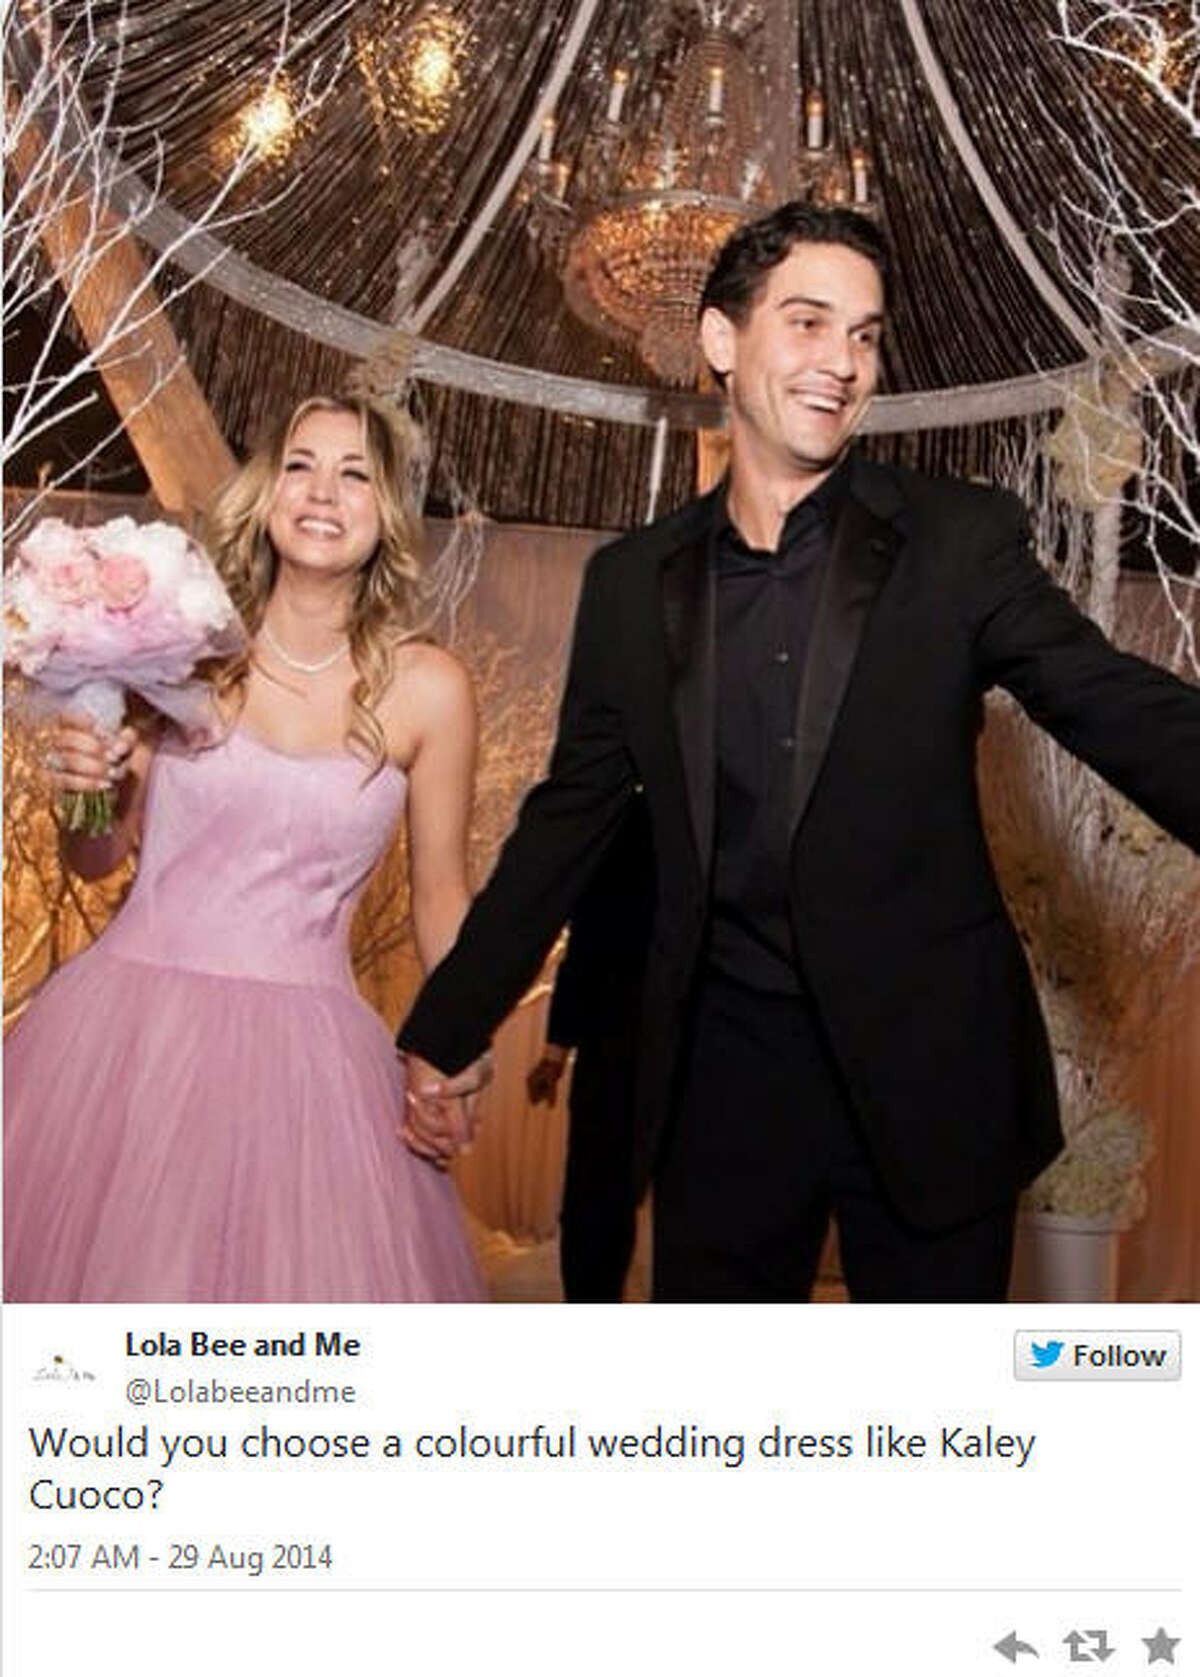 Kaley Cuoco (and her blush wedding gown) married Ryan Sweening on December 31, 2013.